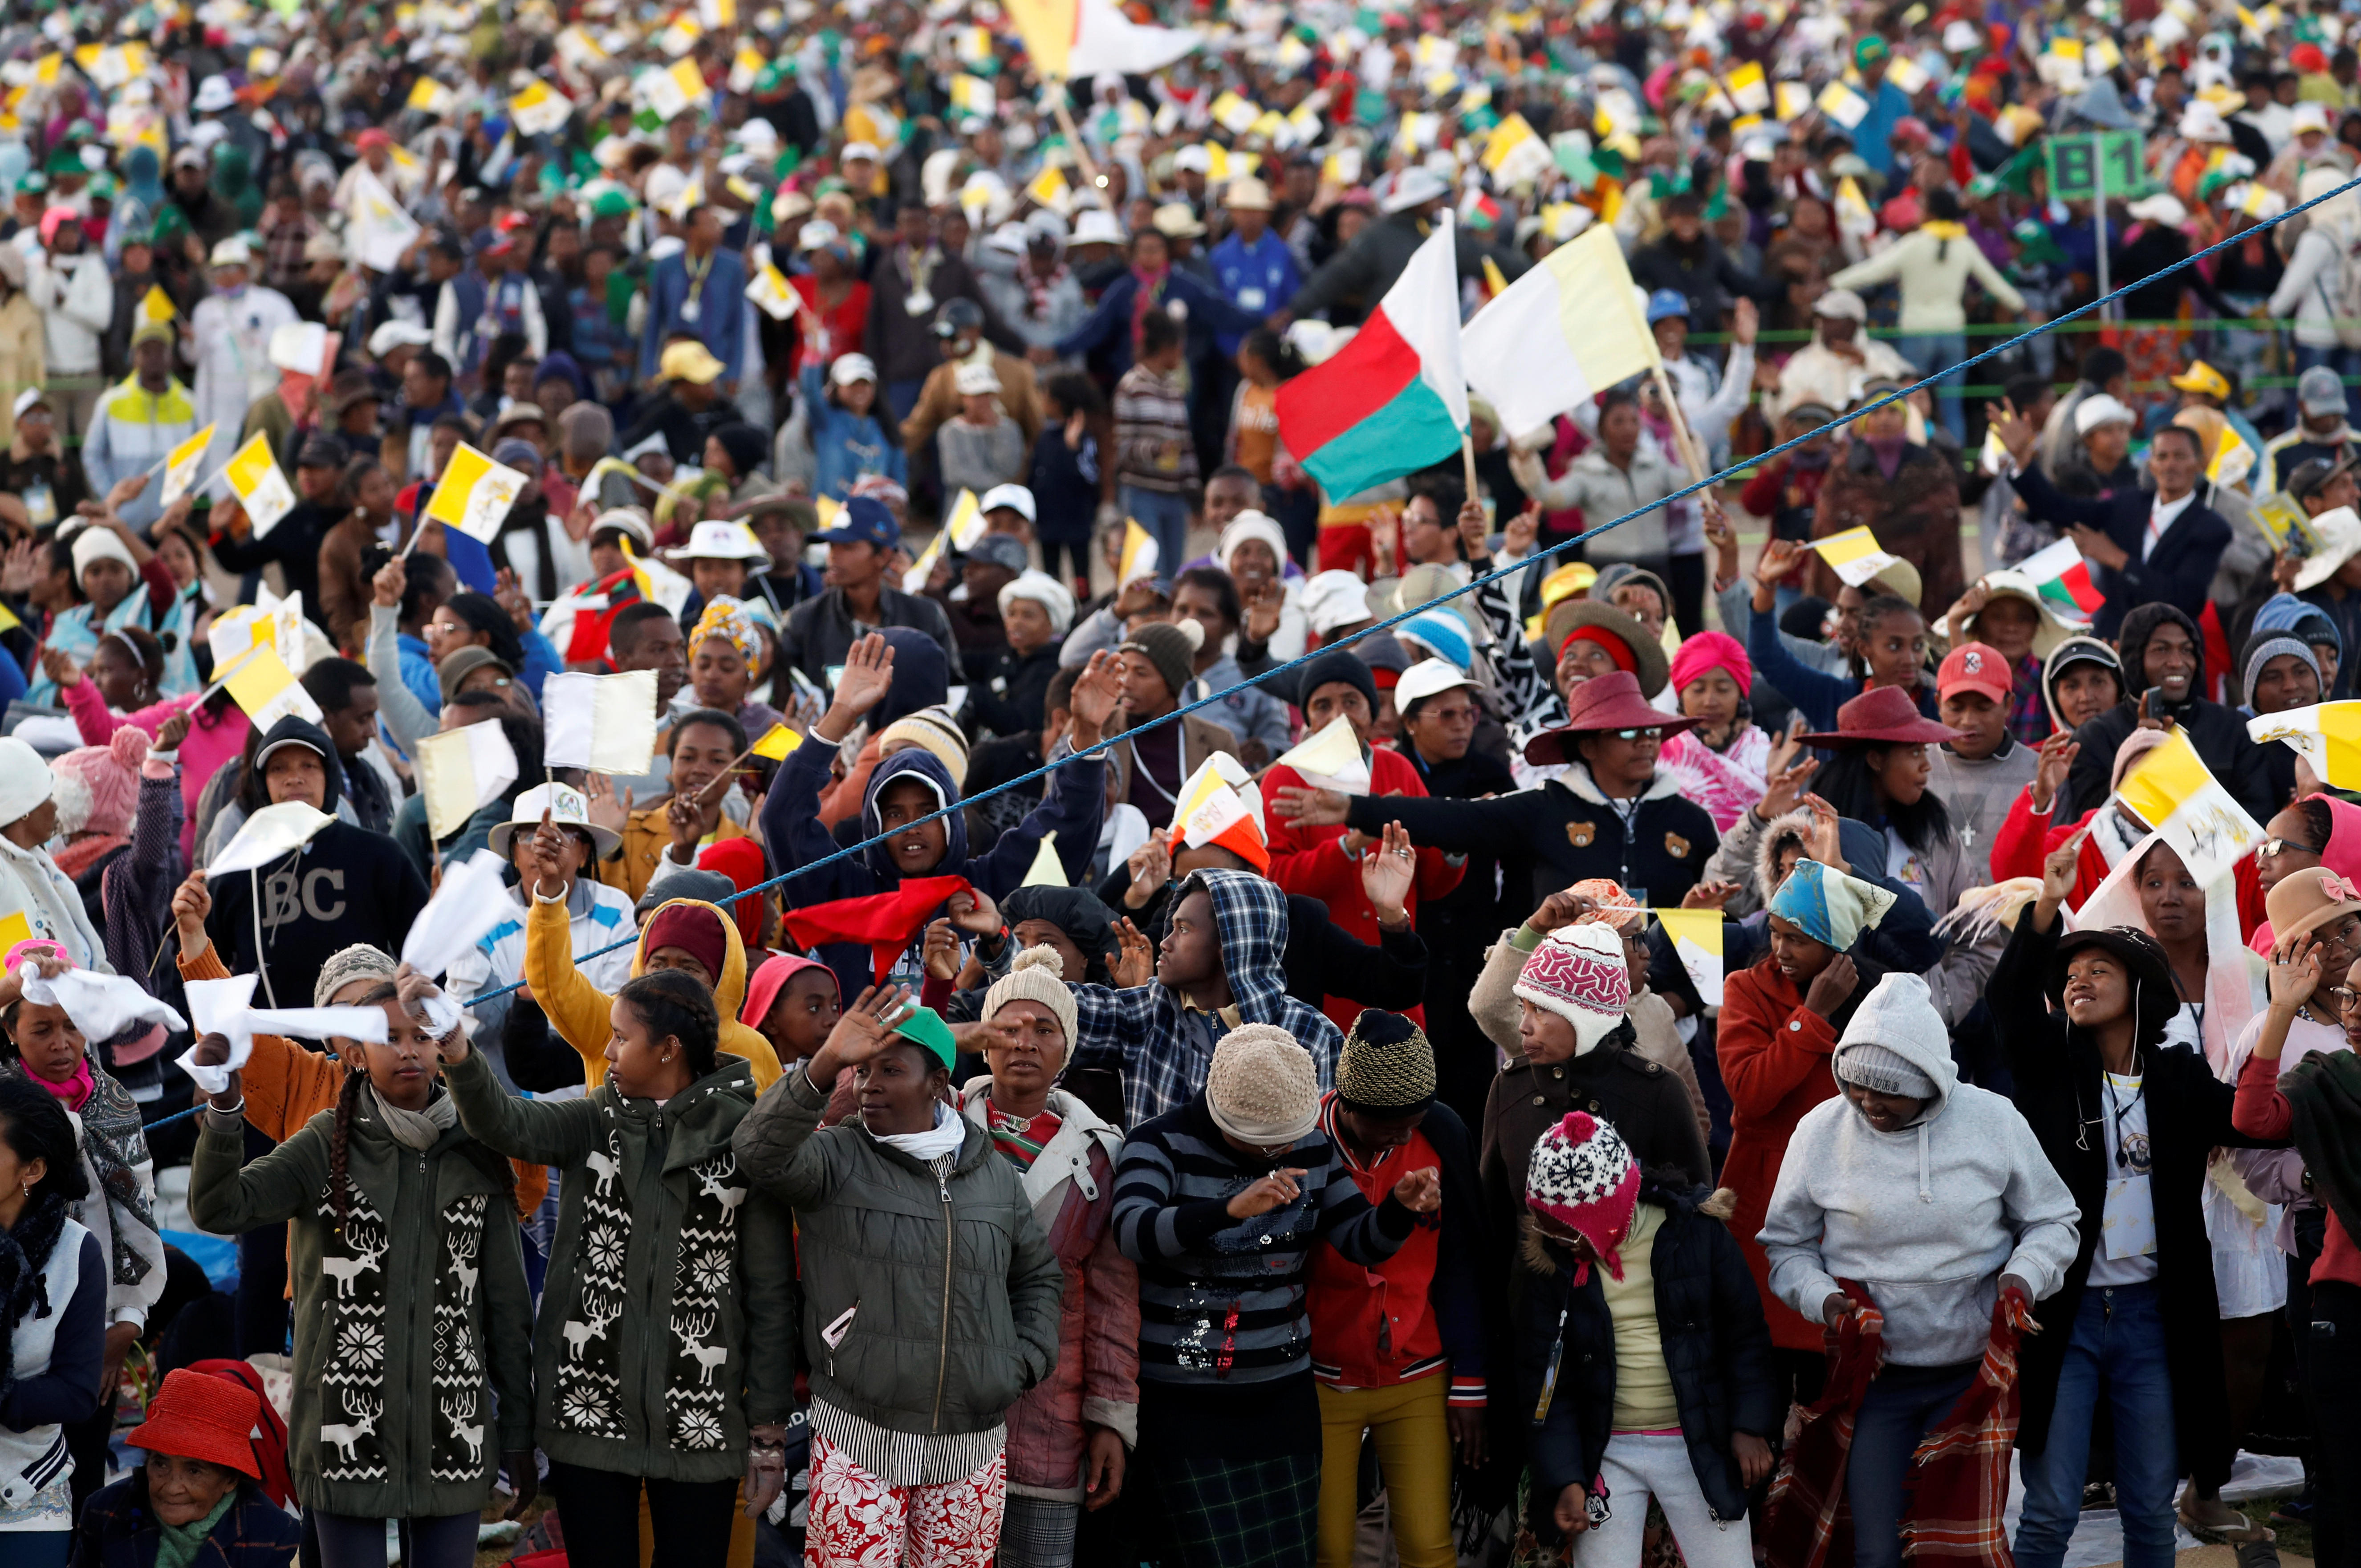 People are seen ahead of Pope Francis' arrival for a prayer vigil with youth at the Soamandrakizay Mess site in Antananarivo, Madagascar, September 7, 2019. REUTERS/Yara Nardi